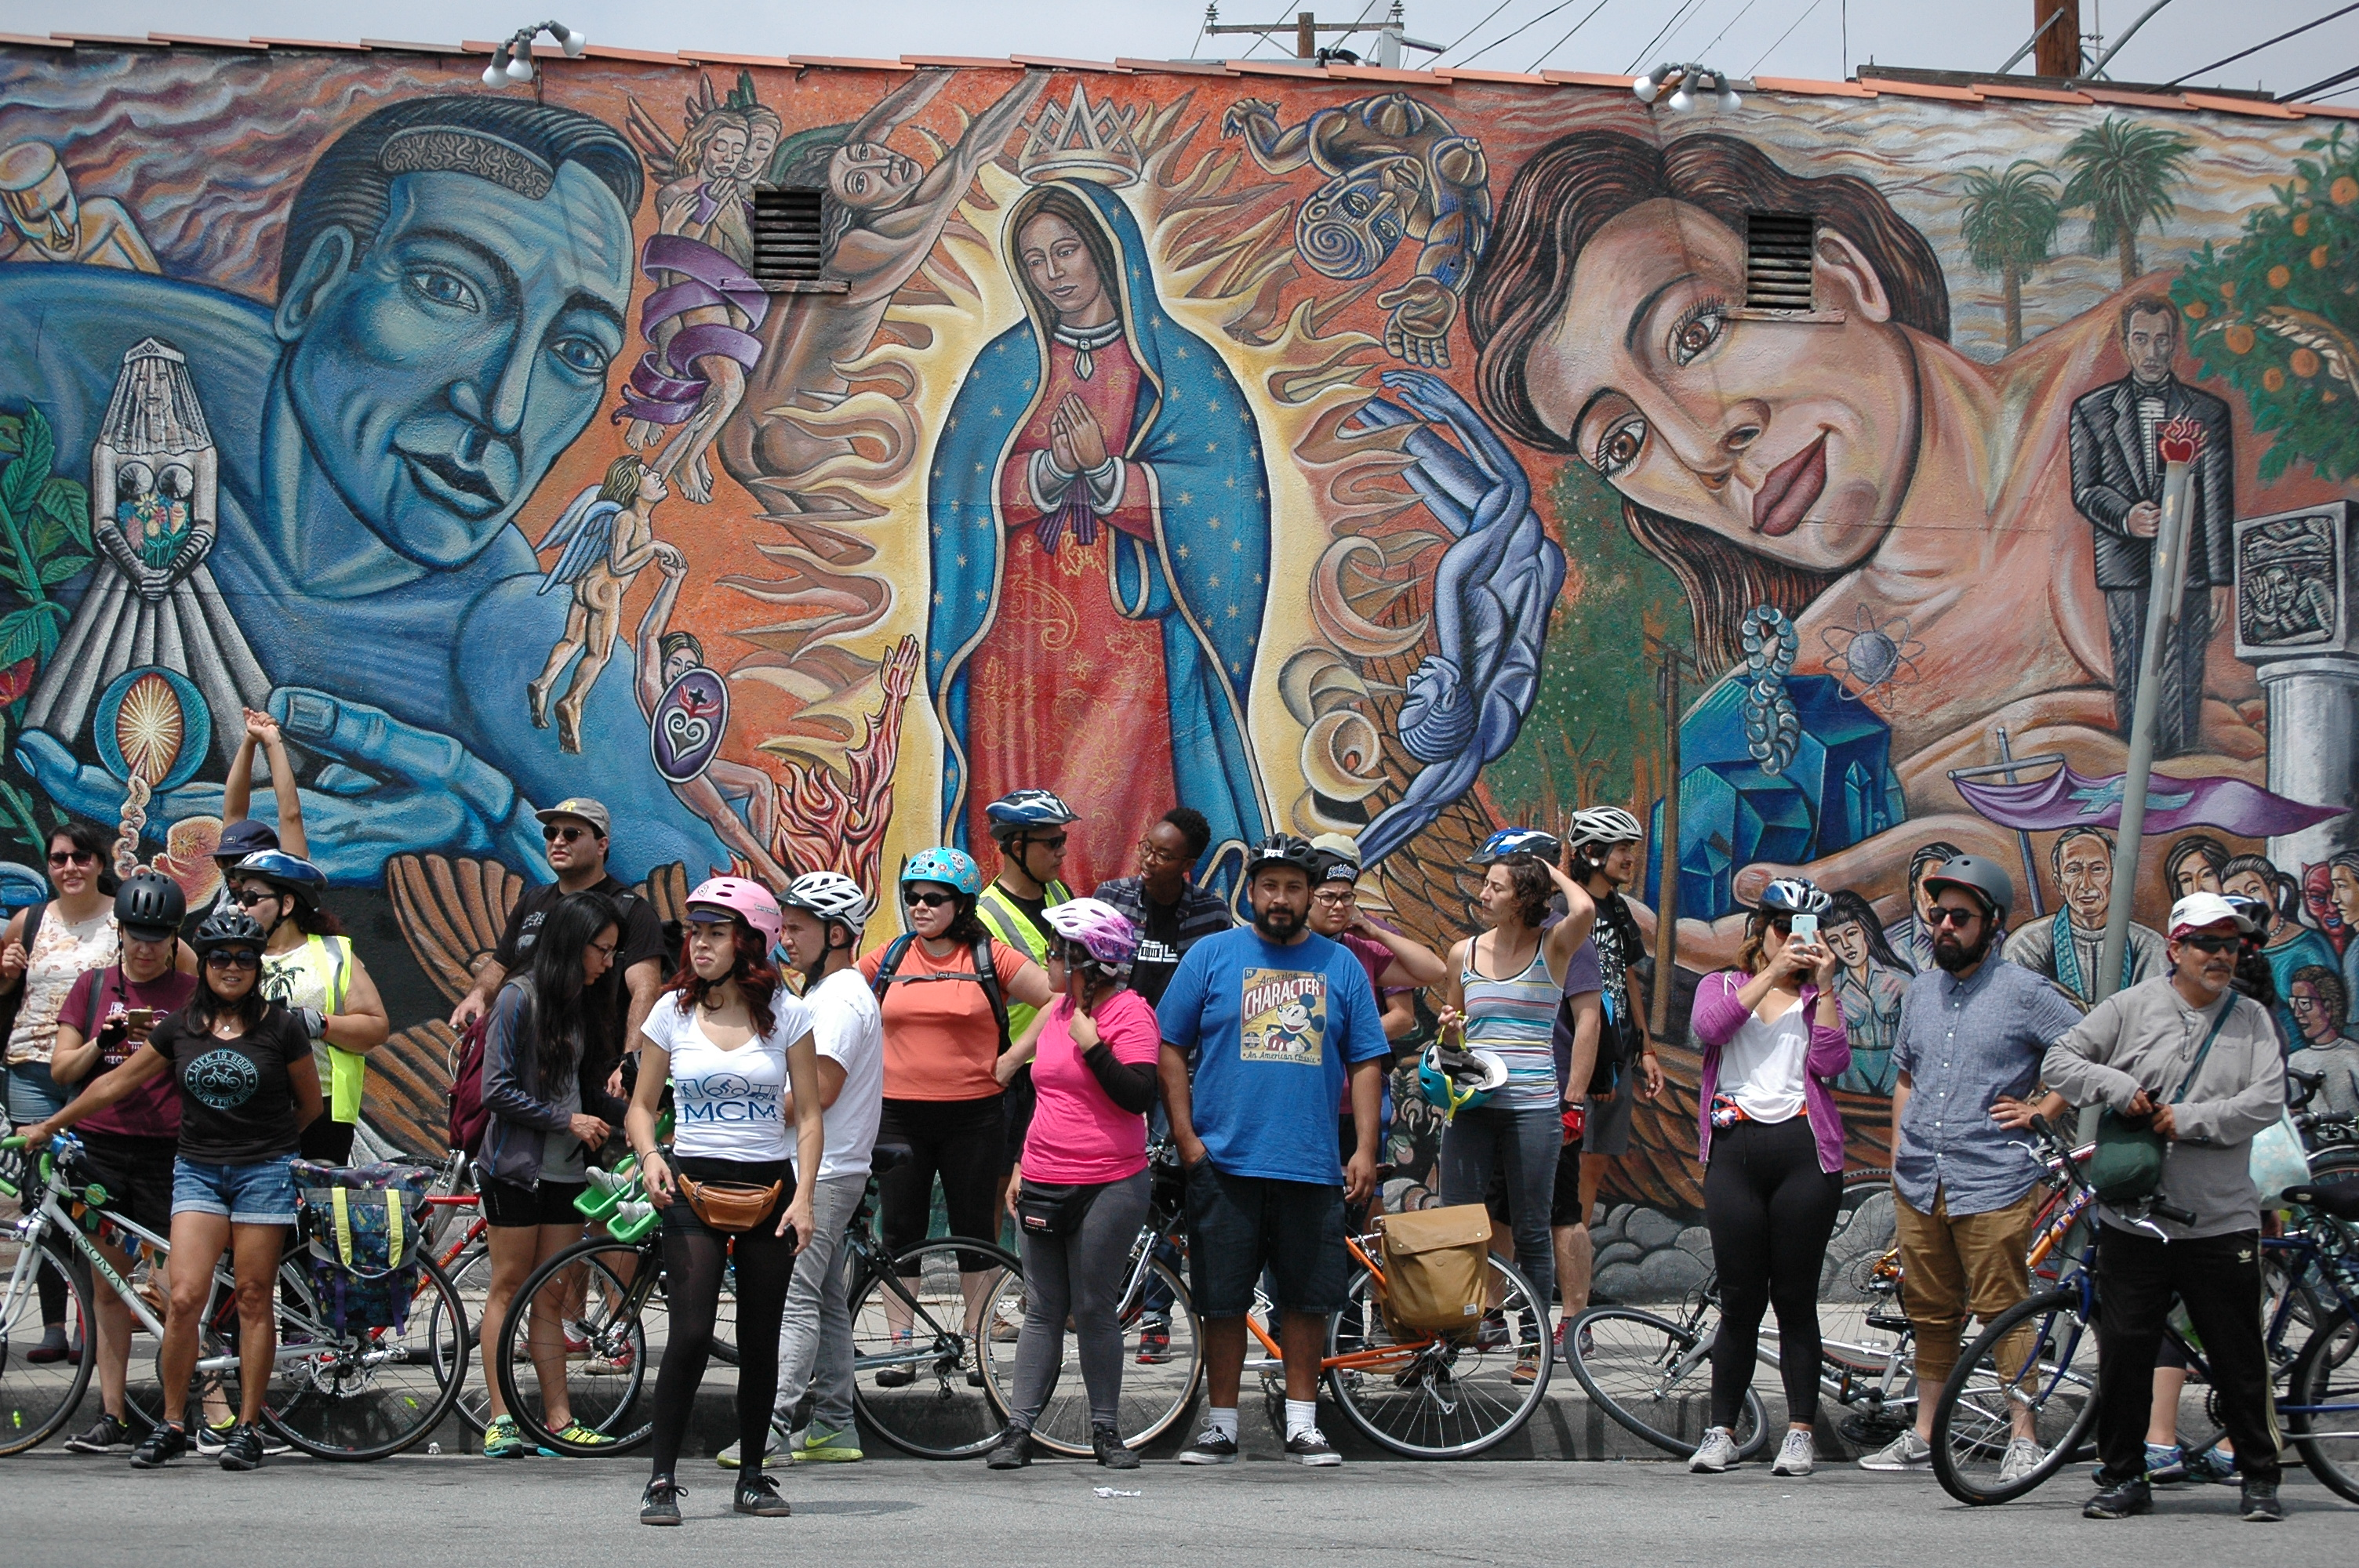 Boyle heights beat bicyclists highlight the murals and for Mural history